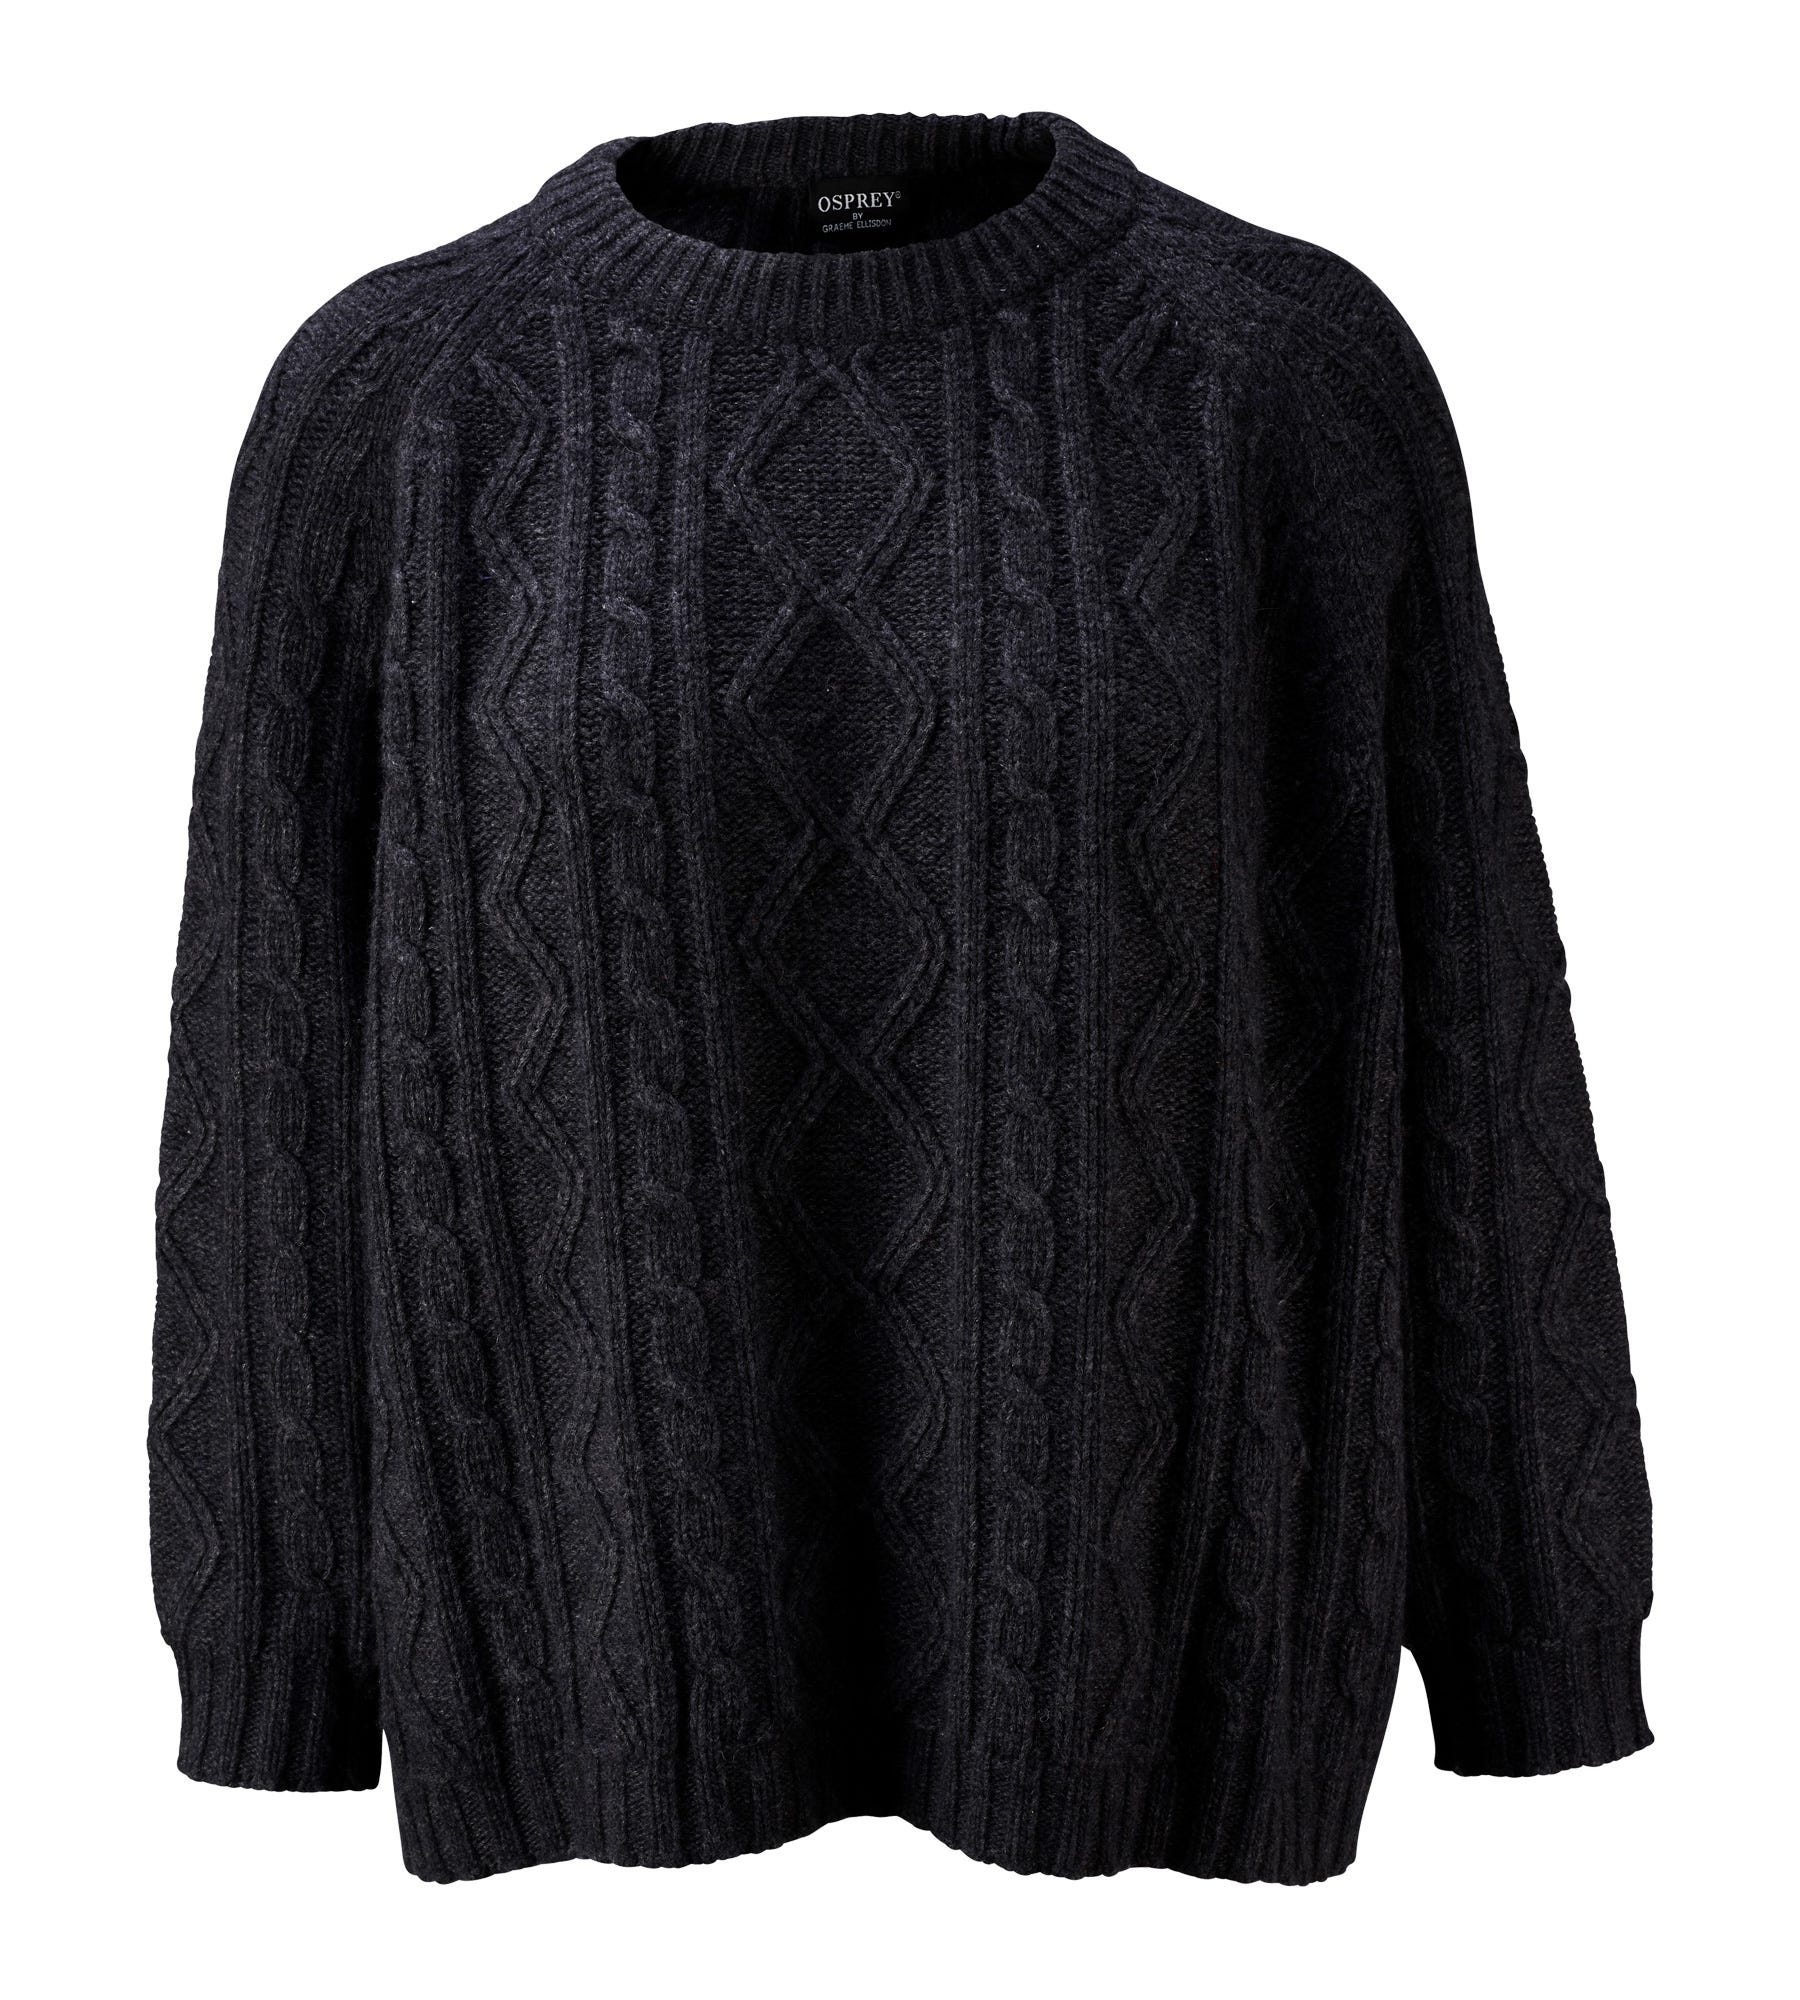 An image of The Cableknit Wool & Cashmere Jumper